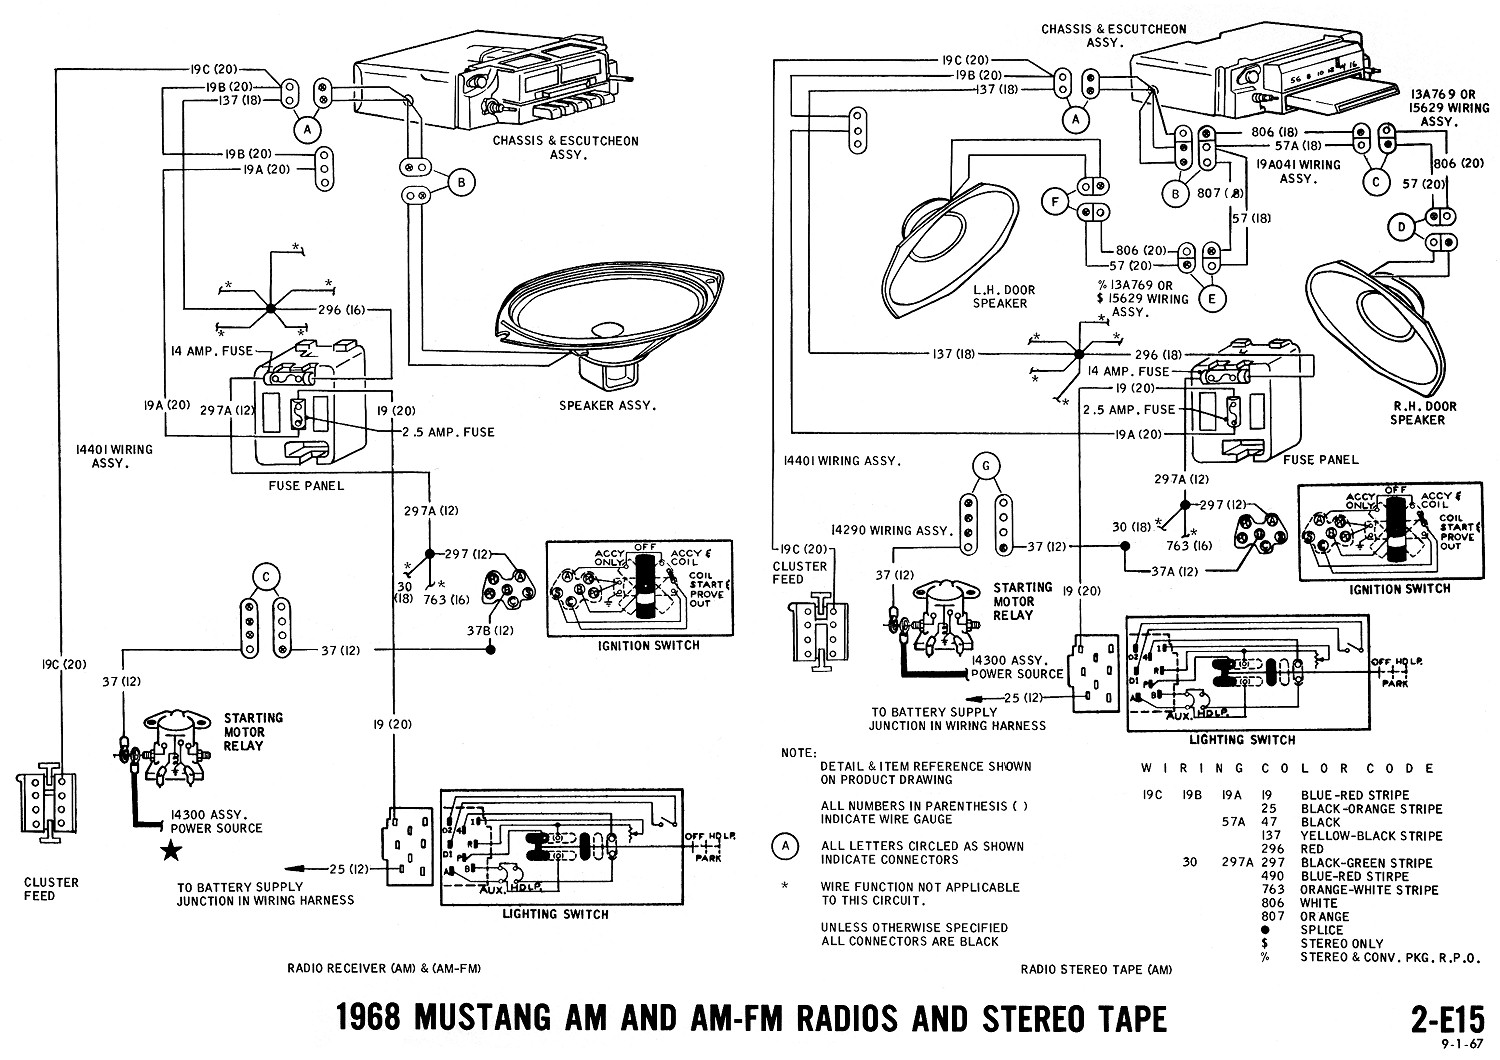 E15 1968 mustang wiring diagrams evolving software 2007 mustang gt stereo wiring diagram at bakdesigns.co